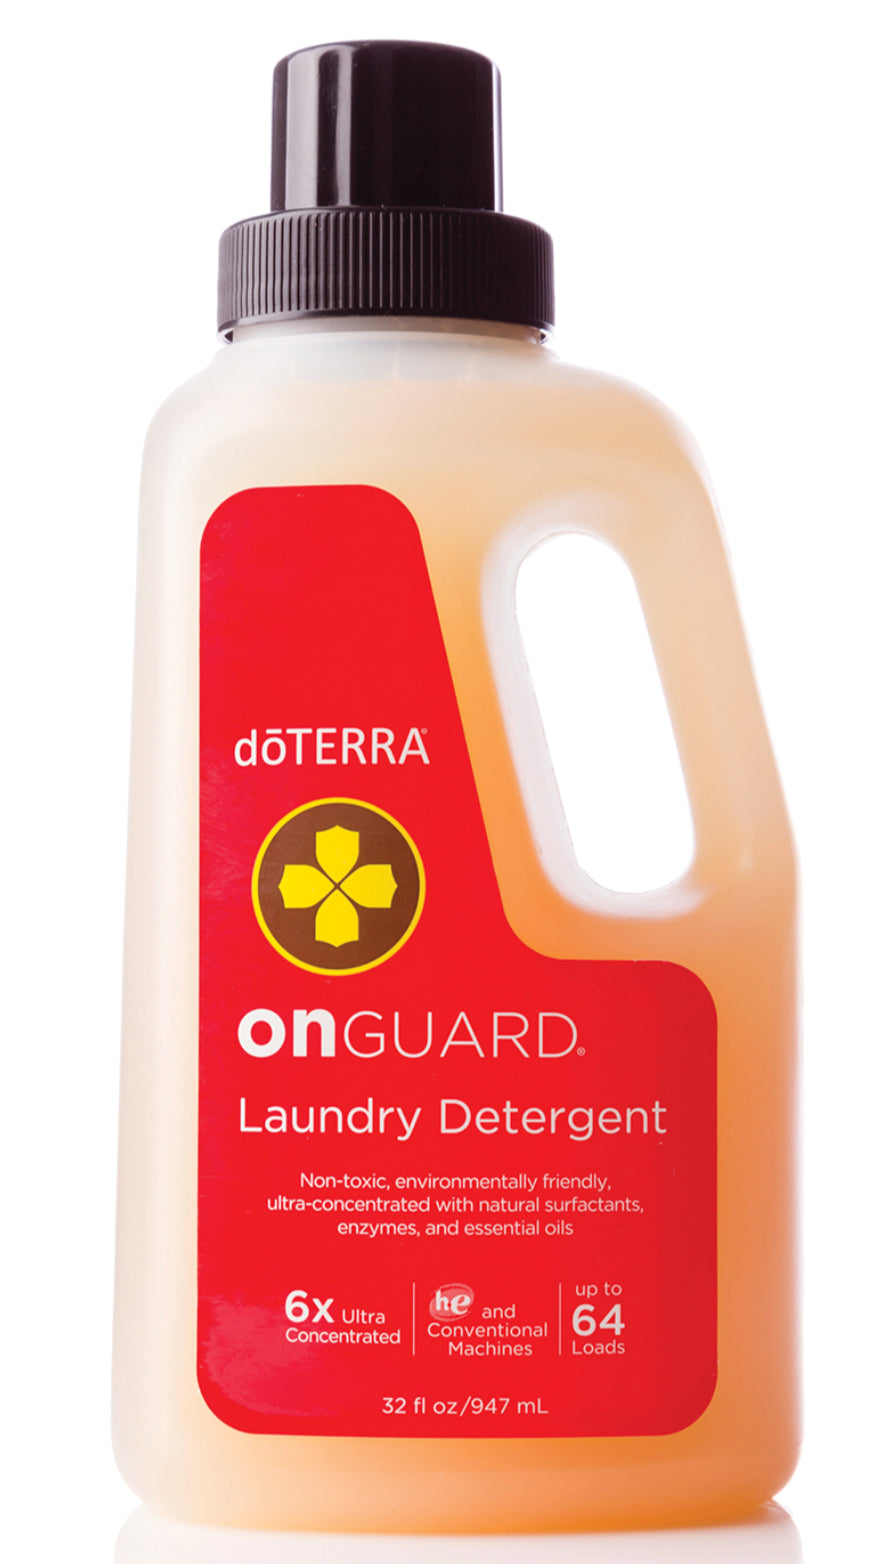 Doterra On Guard Laundry Detergent | 947ml 32 oz | OnGuard Liquid 64 Loads - Integrity Lane